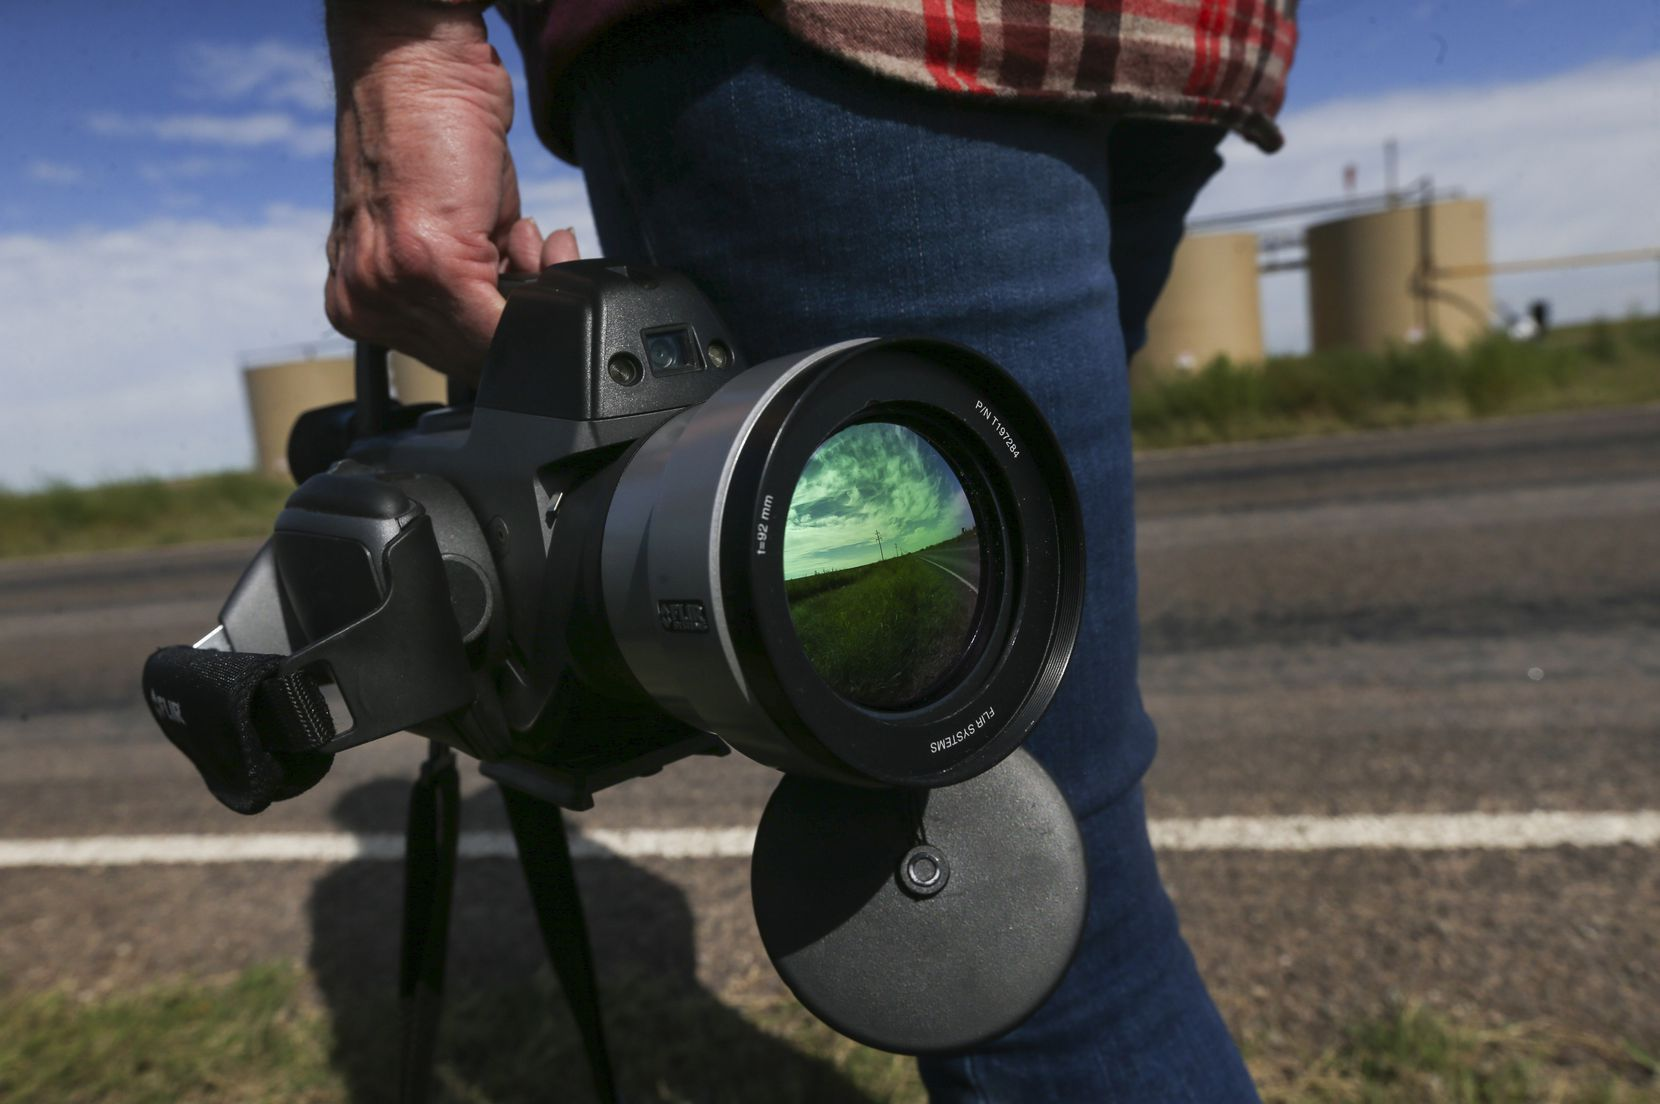 Sharon Wilson clasps a FLIR infrared camera as she prepares to record video of methane and other hydrocarbon emissions from oil storage tanks.